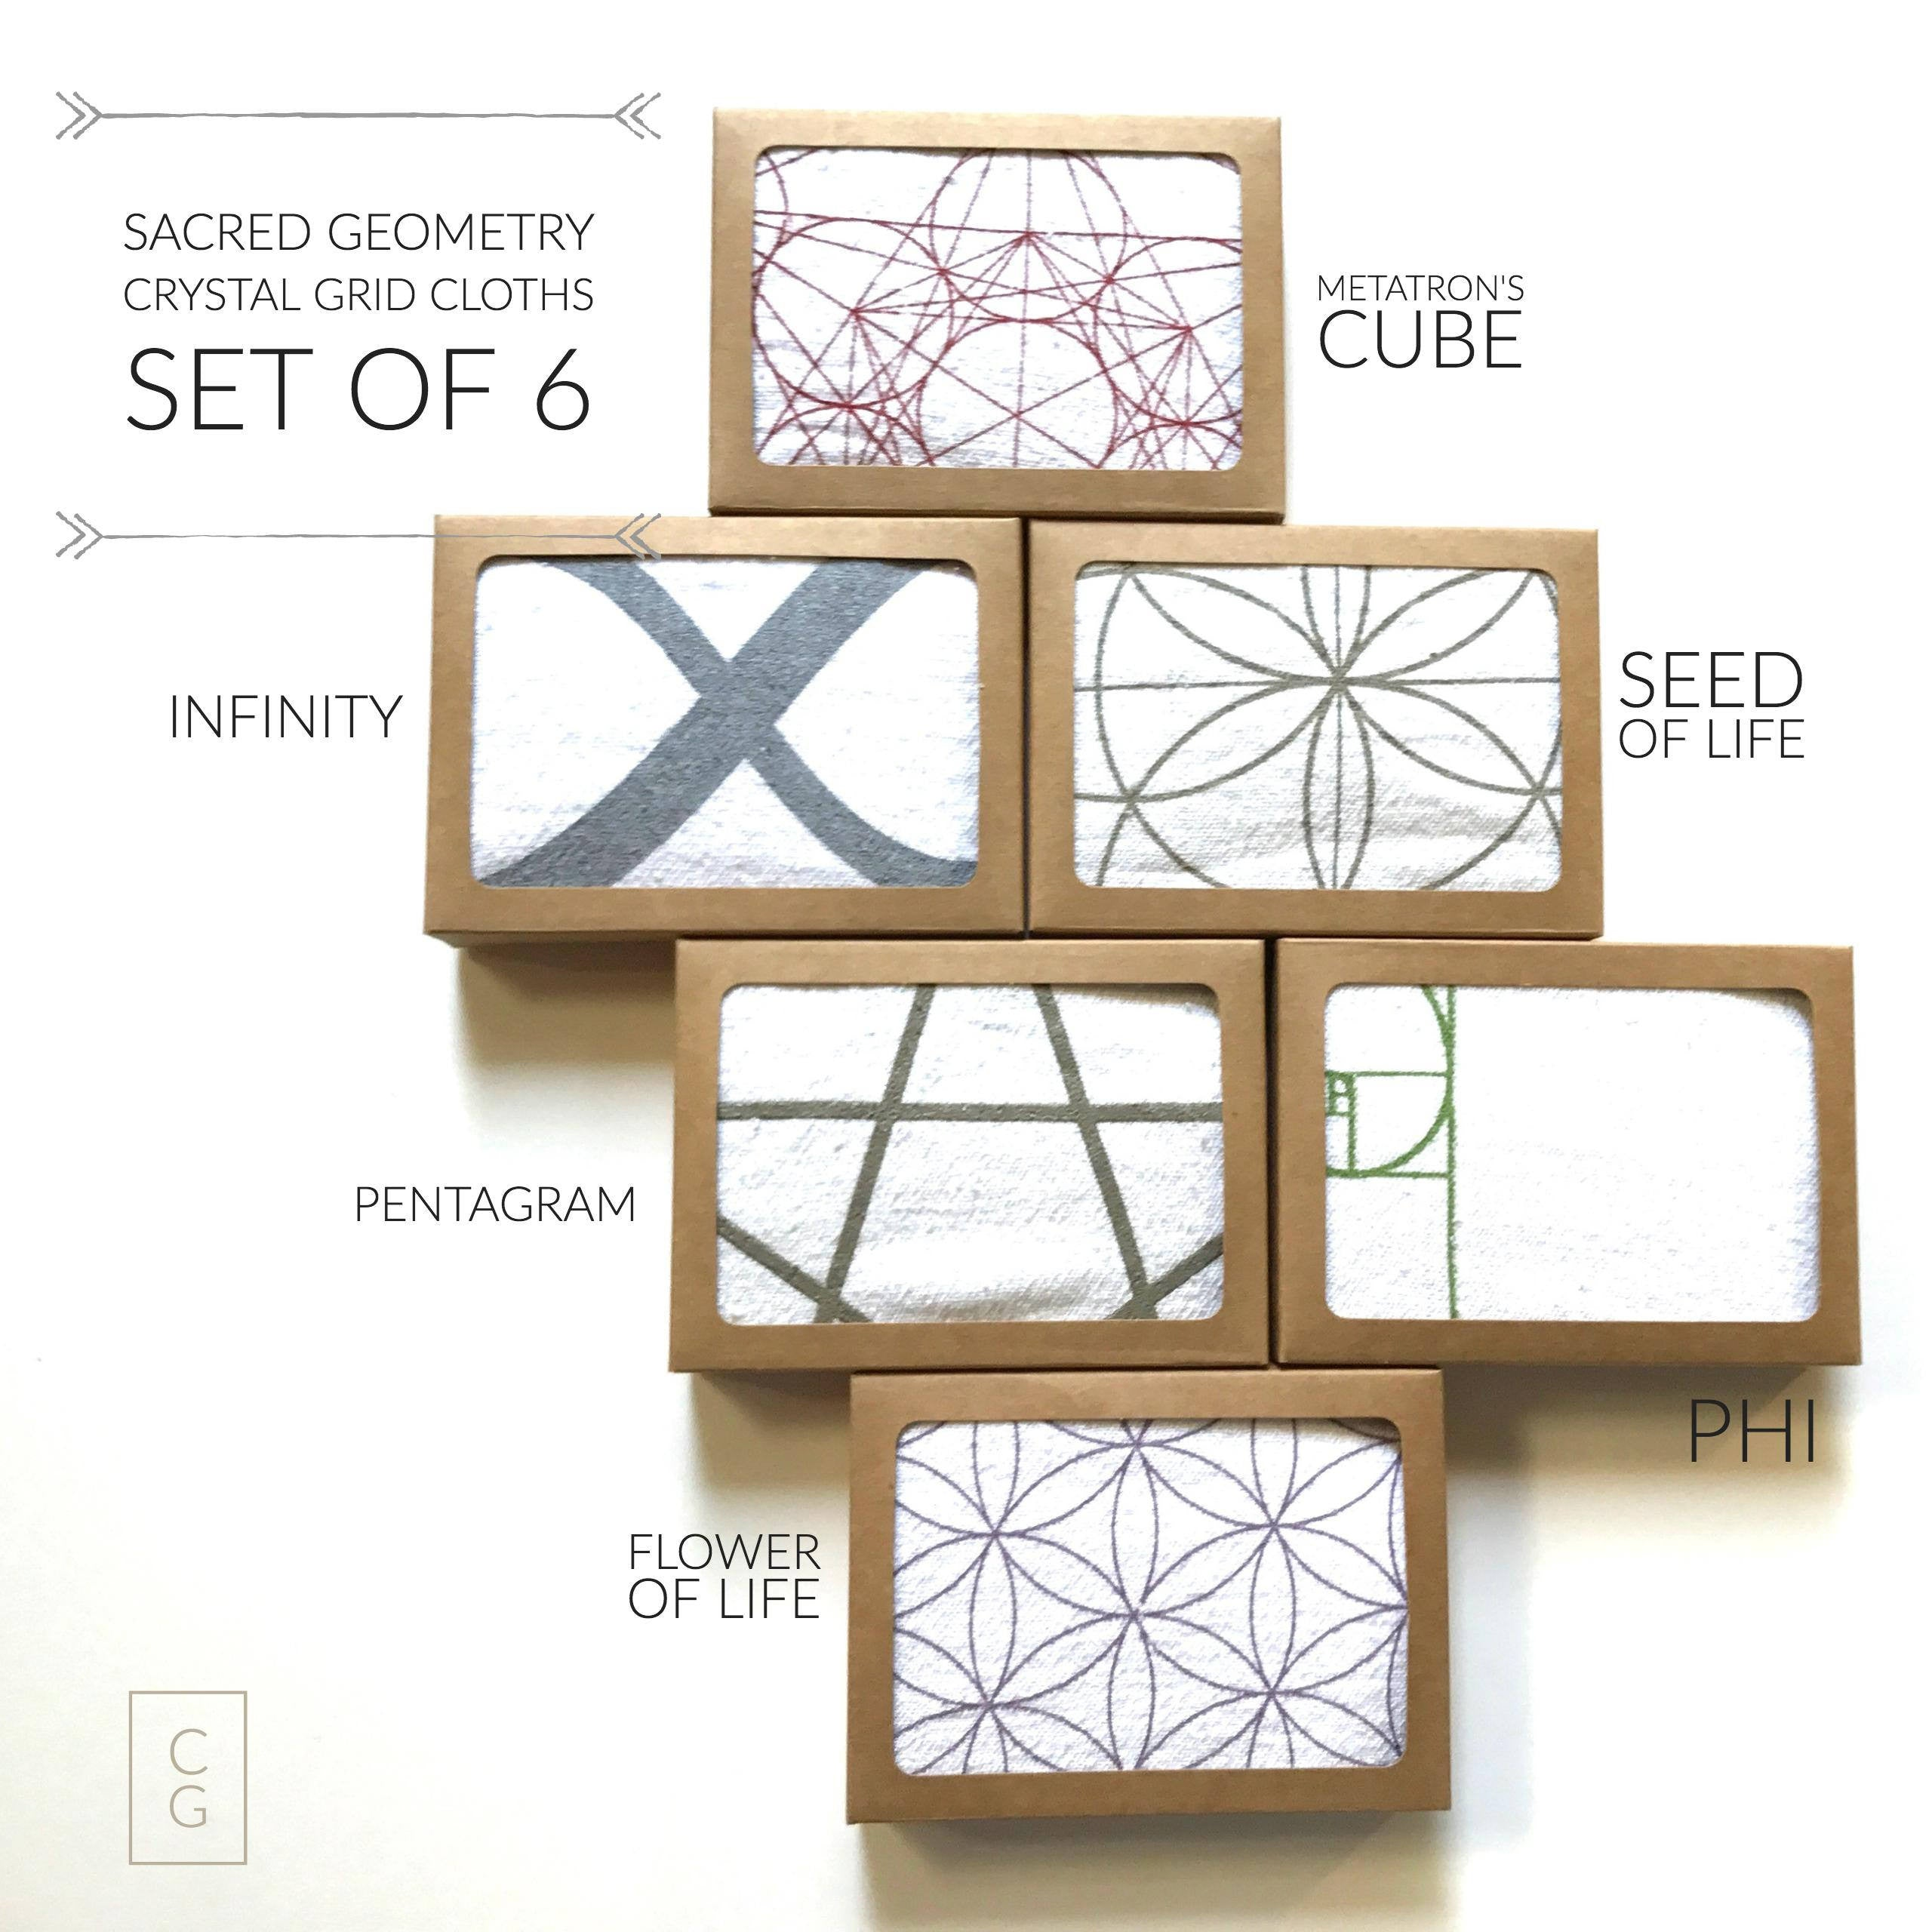 CRYSTAL GRID CLOTHS Set Of 6 100 Cotton All Natural Sacred Geometry Grid Templates